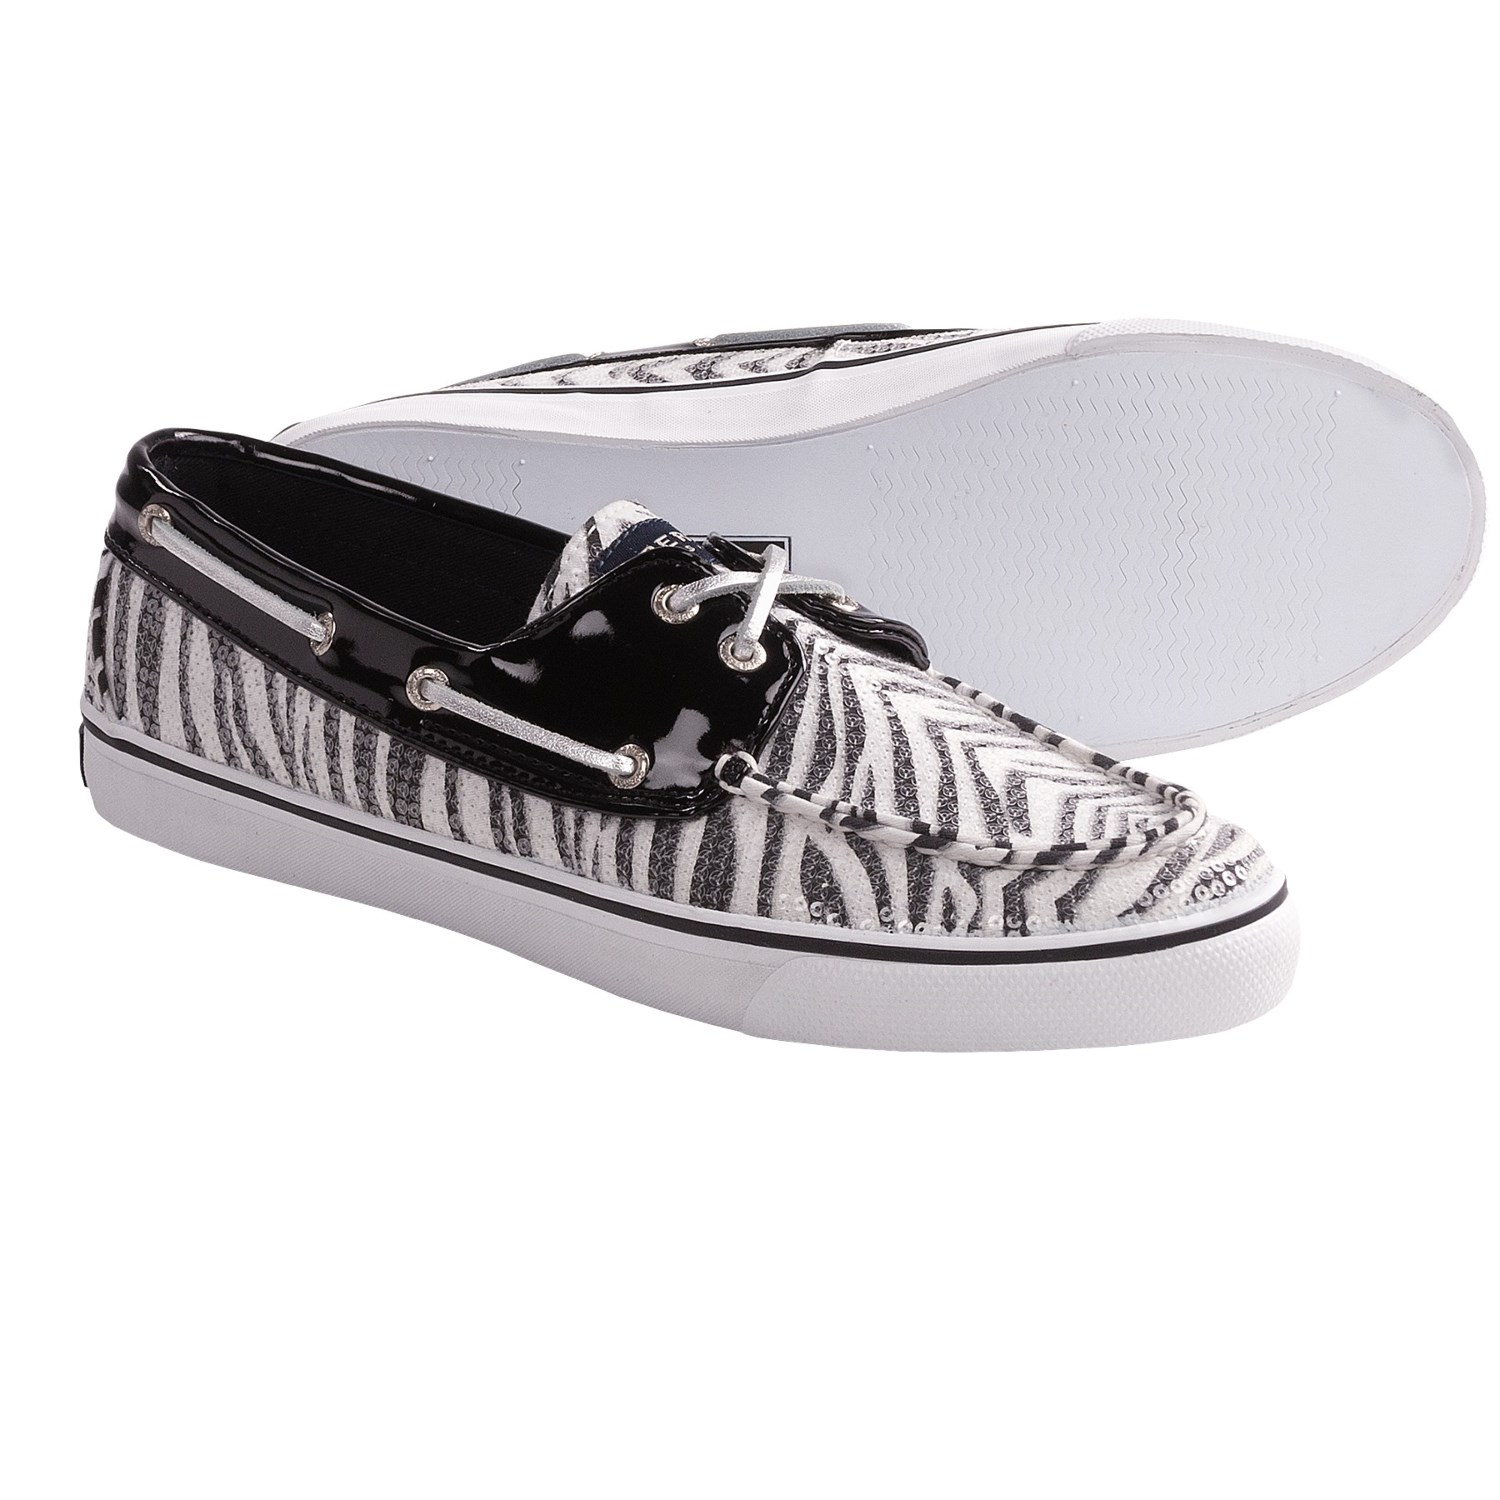 Sperrys Shoes Boat shoes (for women) in